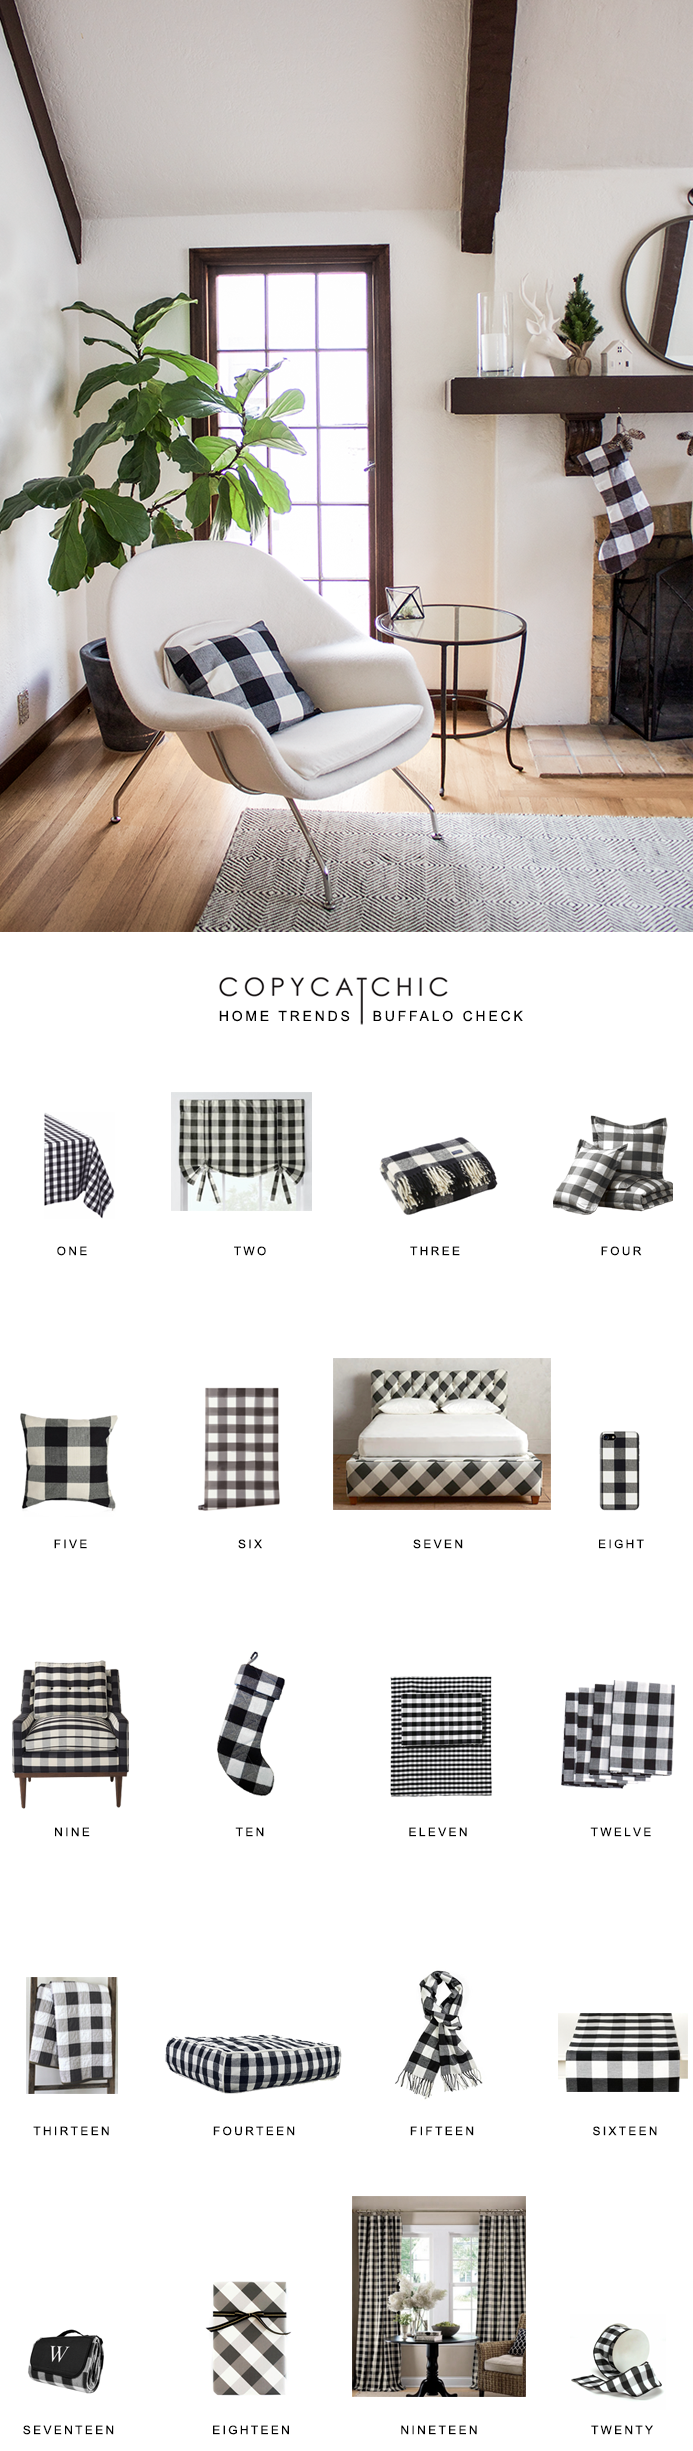 Our favorite buffalo check home decor trending right now. Black and white plaid is classic and always in style. @copycatchic luxe living for less.